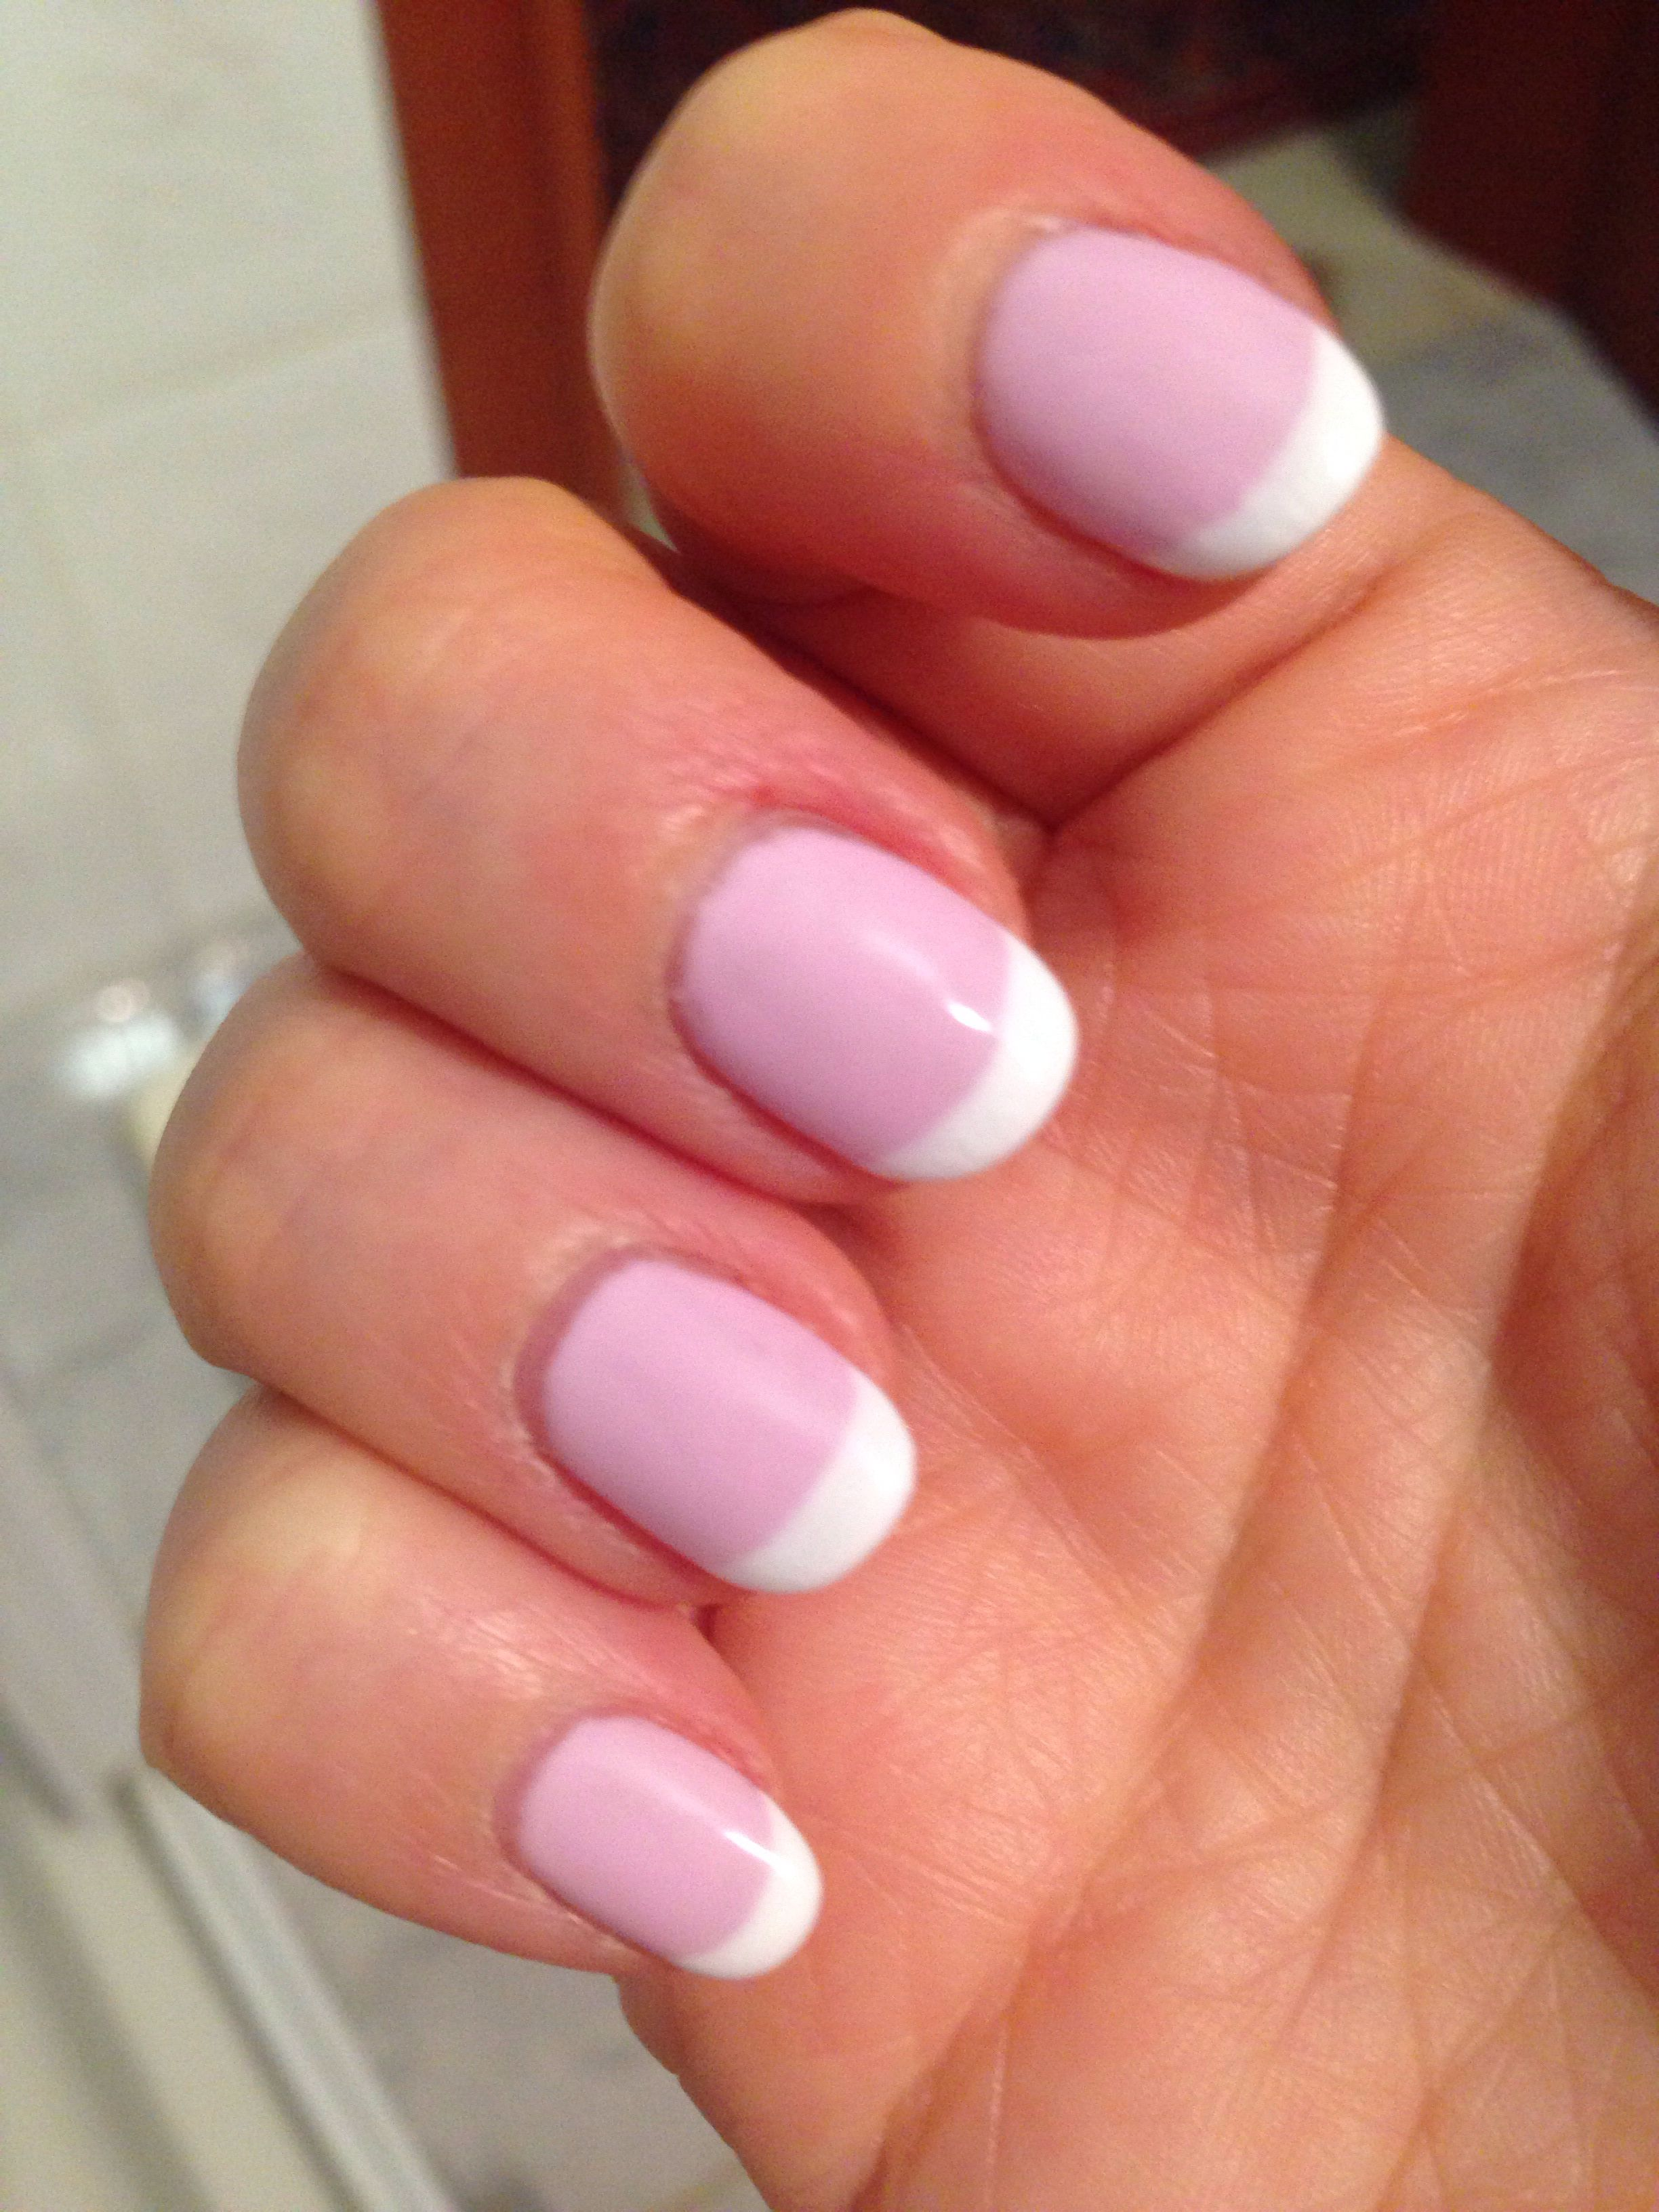 French pink and white nails | Nails | Pinterest | White nails and ...